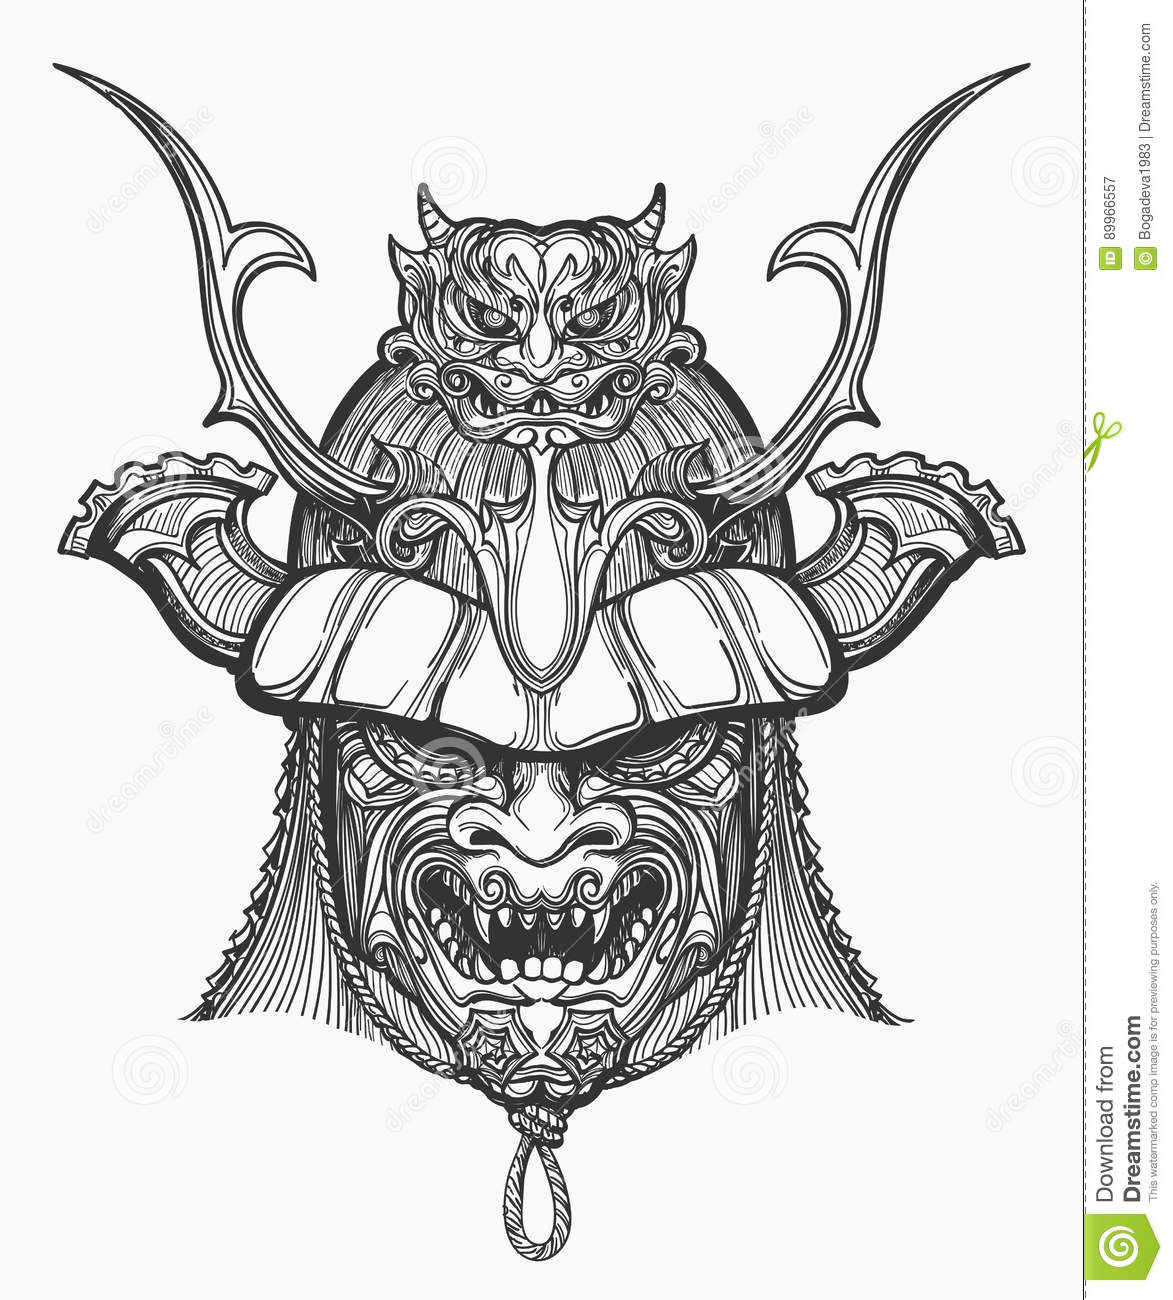 5720995bb0f39 Samurai mask hand drawn illustration. Japanese traditional martial mask.  Black and white isolated on white.